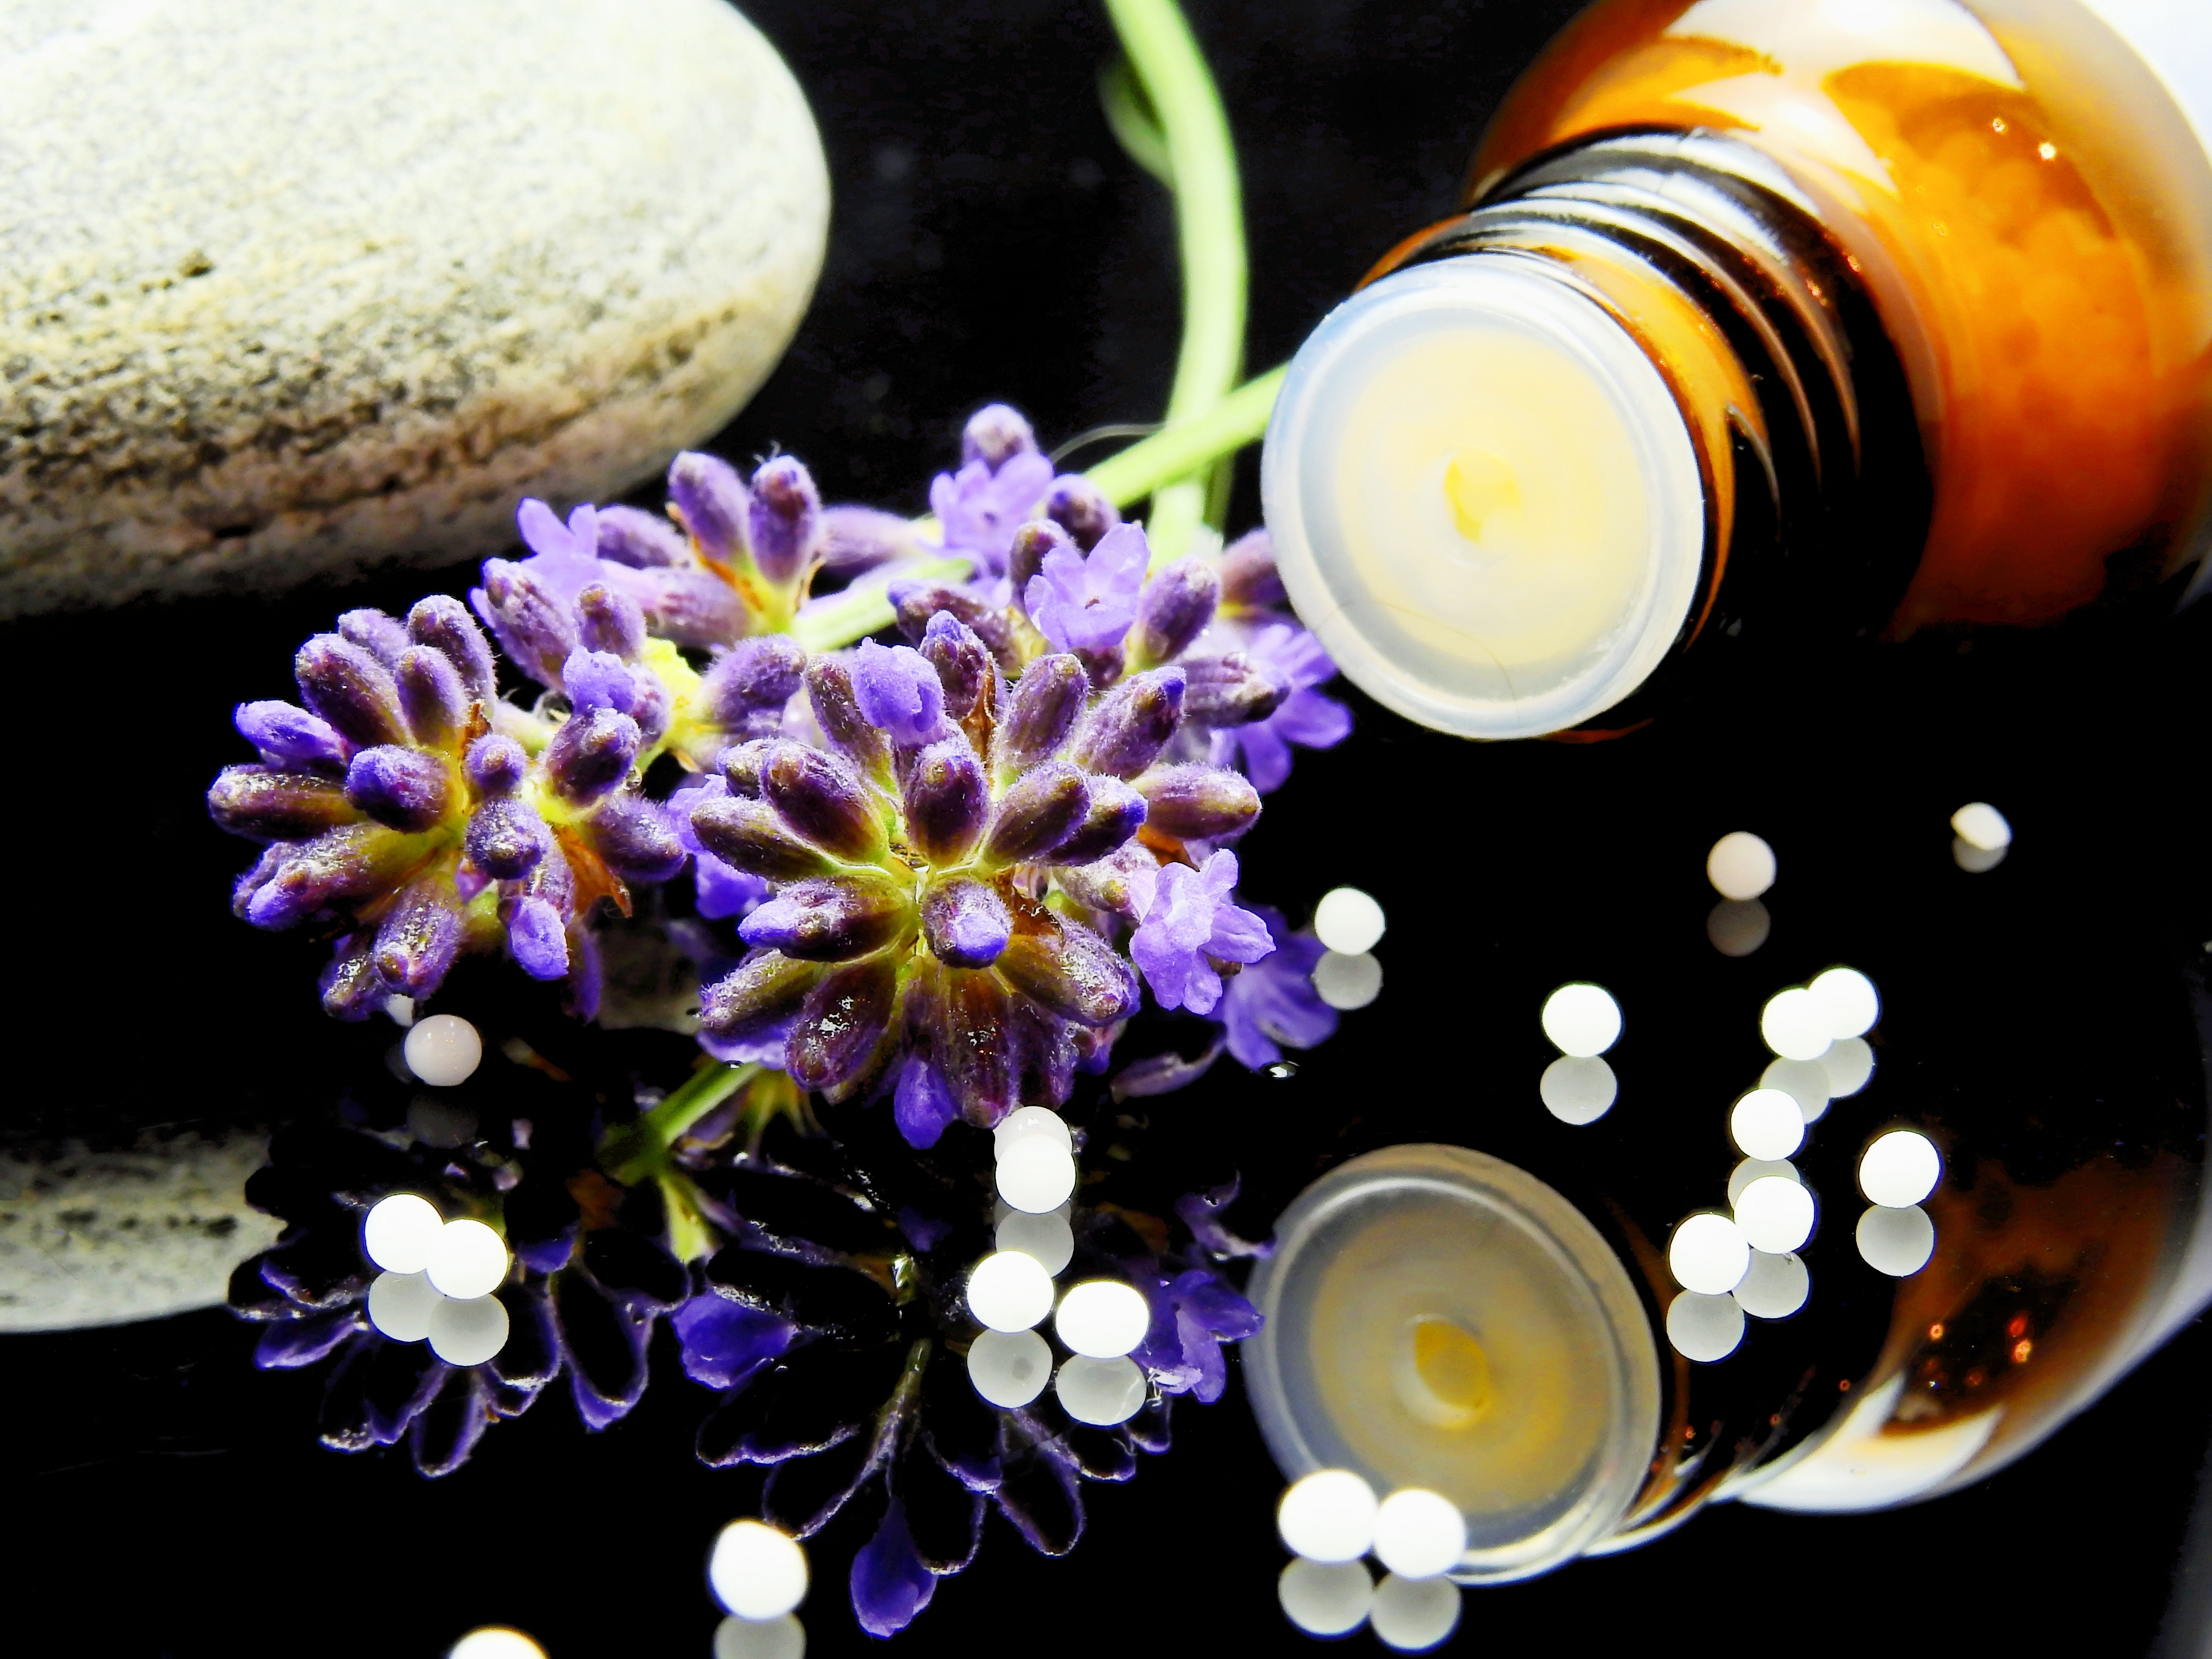 Green Purple Flower, Pharmaceutical, Reflection, Naturopathy, Medicine, HQ Photo